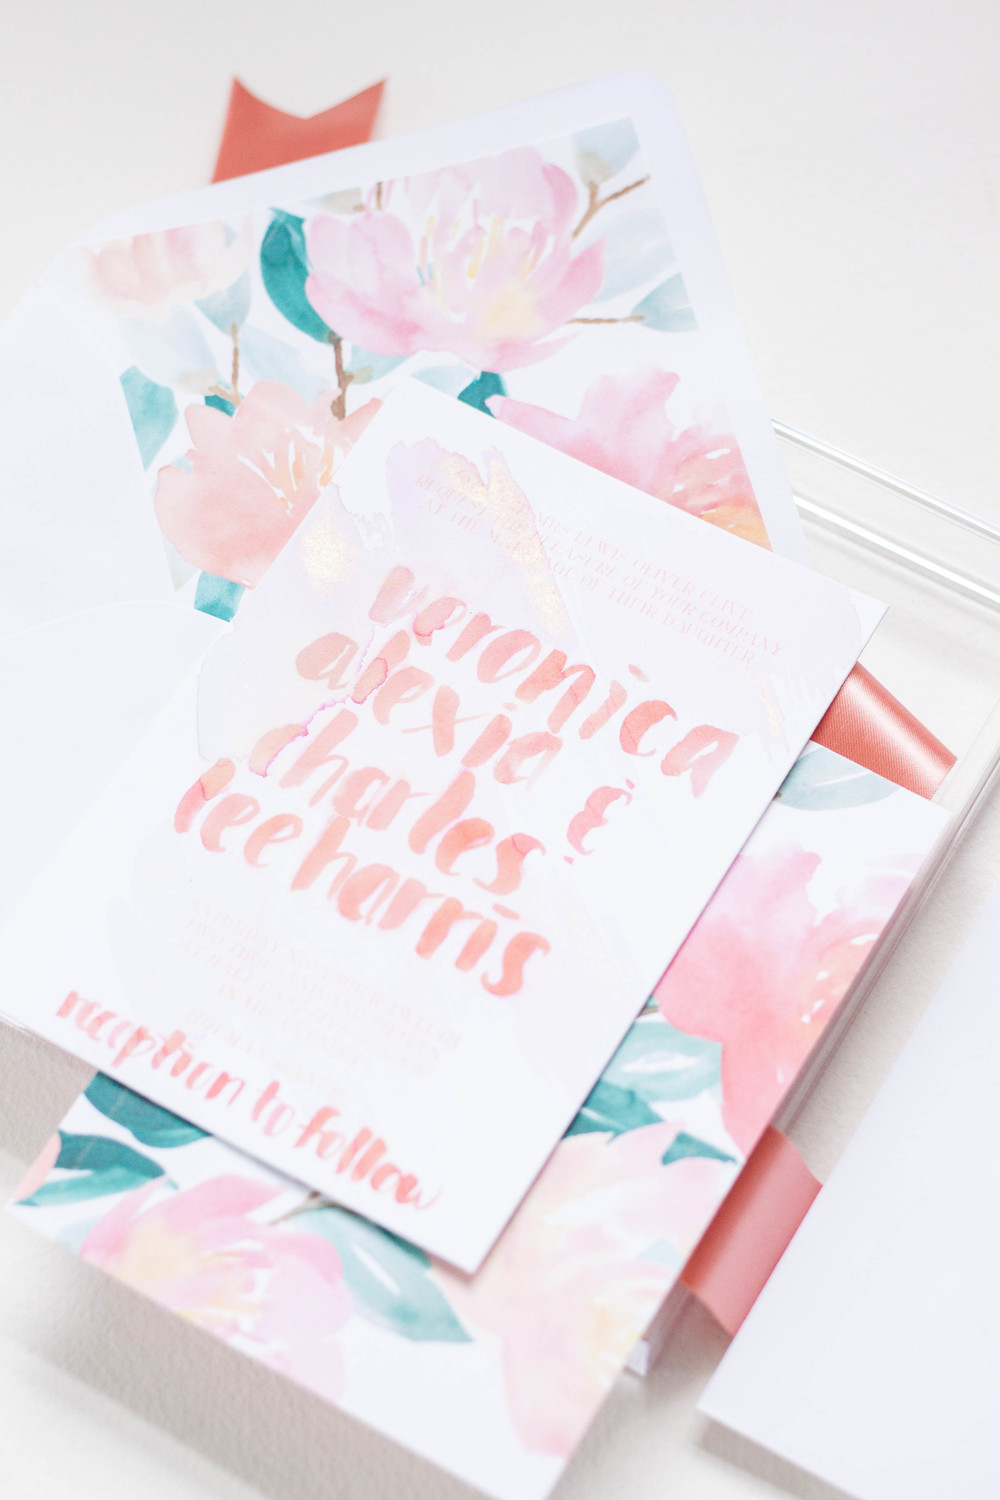 Design House of Moira | Summer Watercolor Invitation